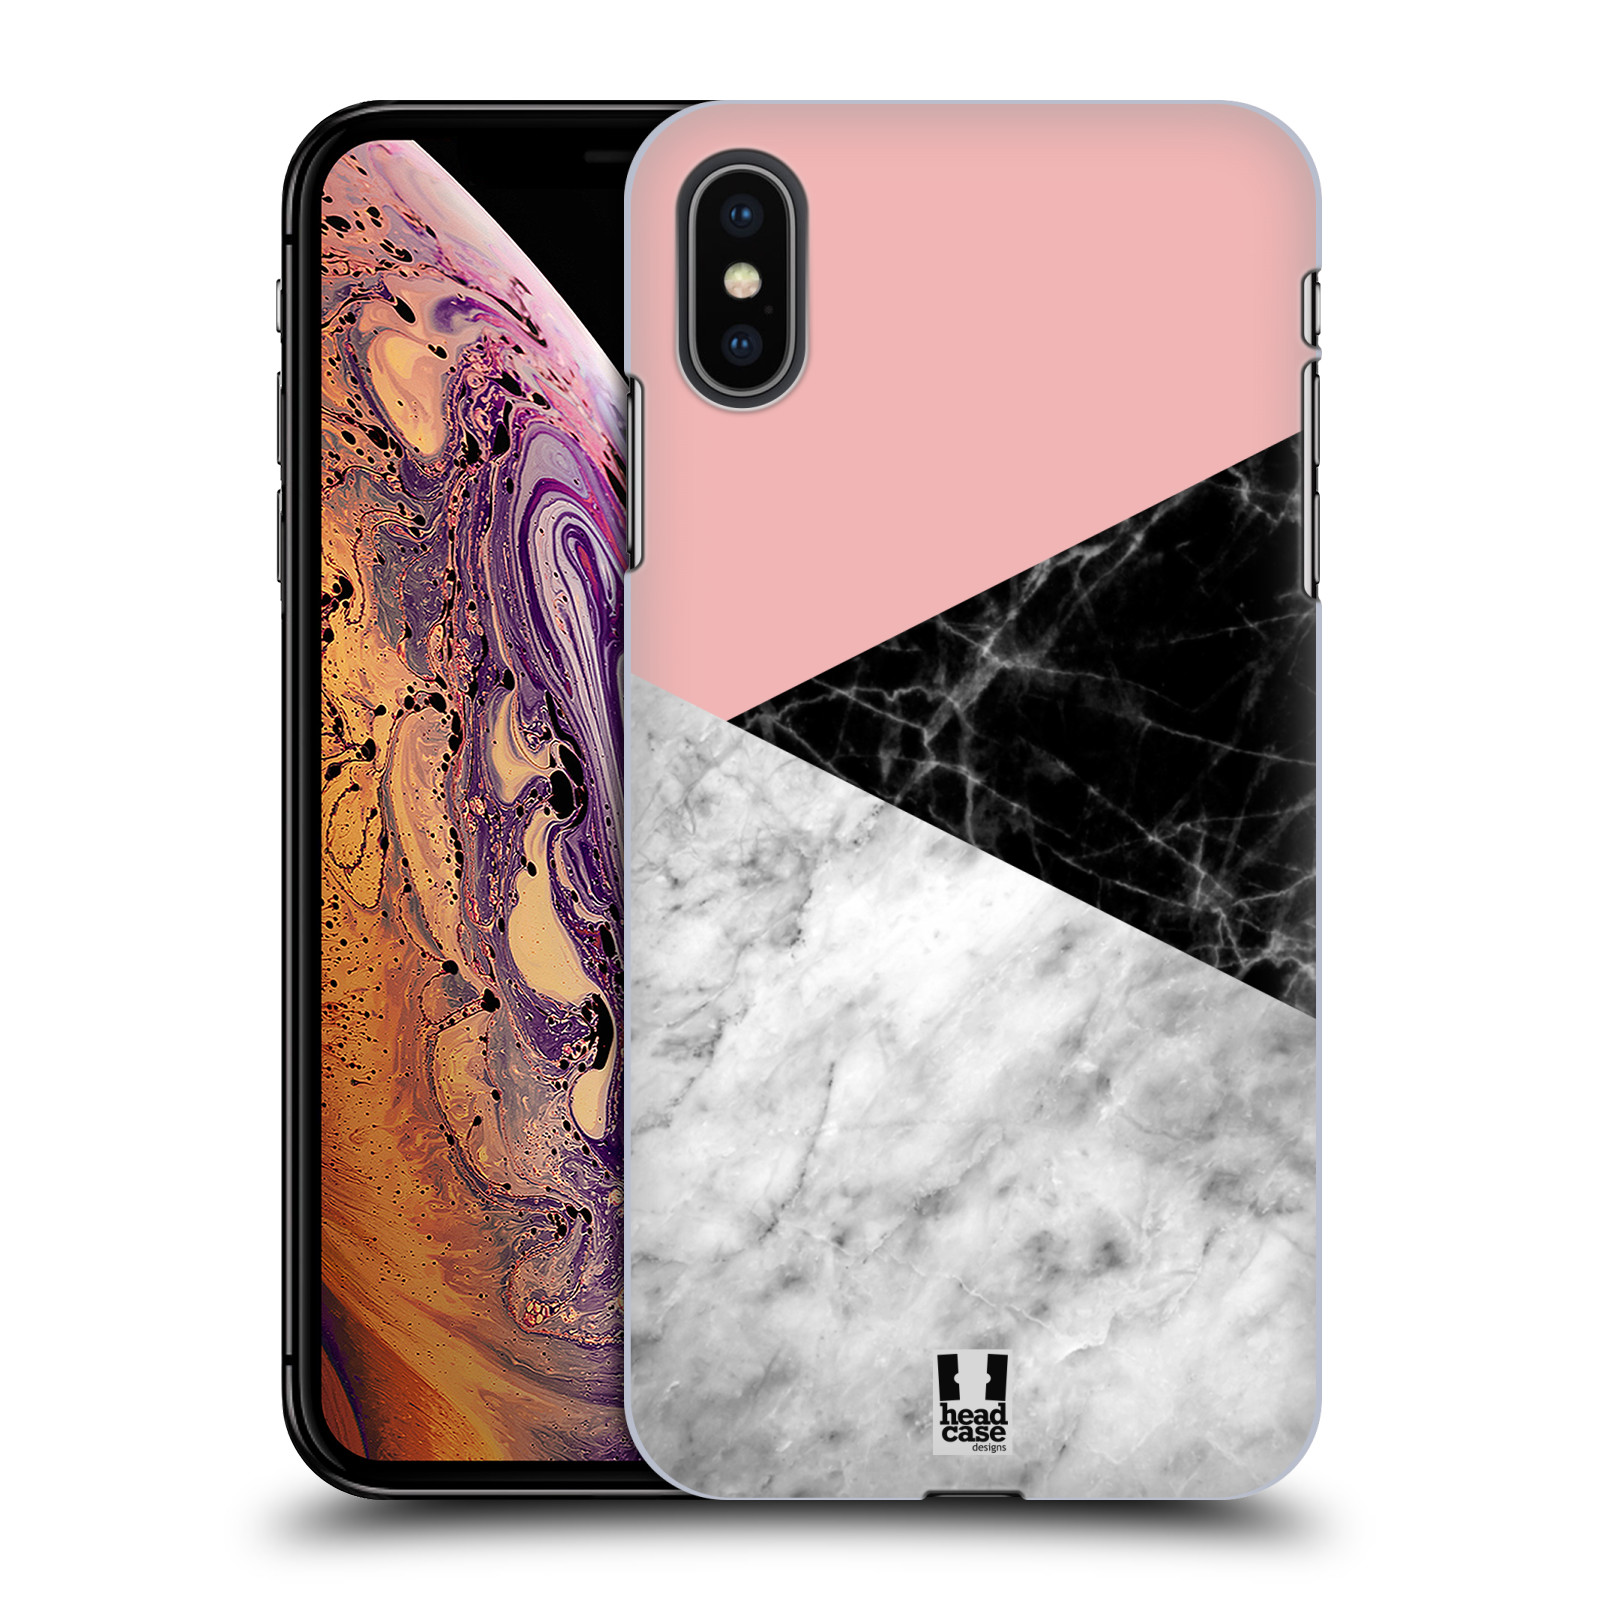 Plastové pouzdro na mobil Apple iPhone XS Max - Head Case - Mramor mix